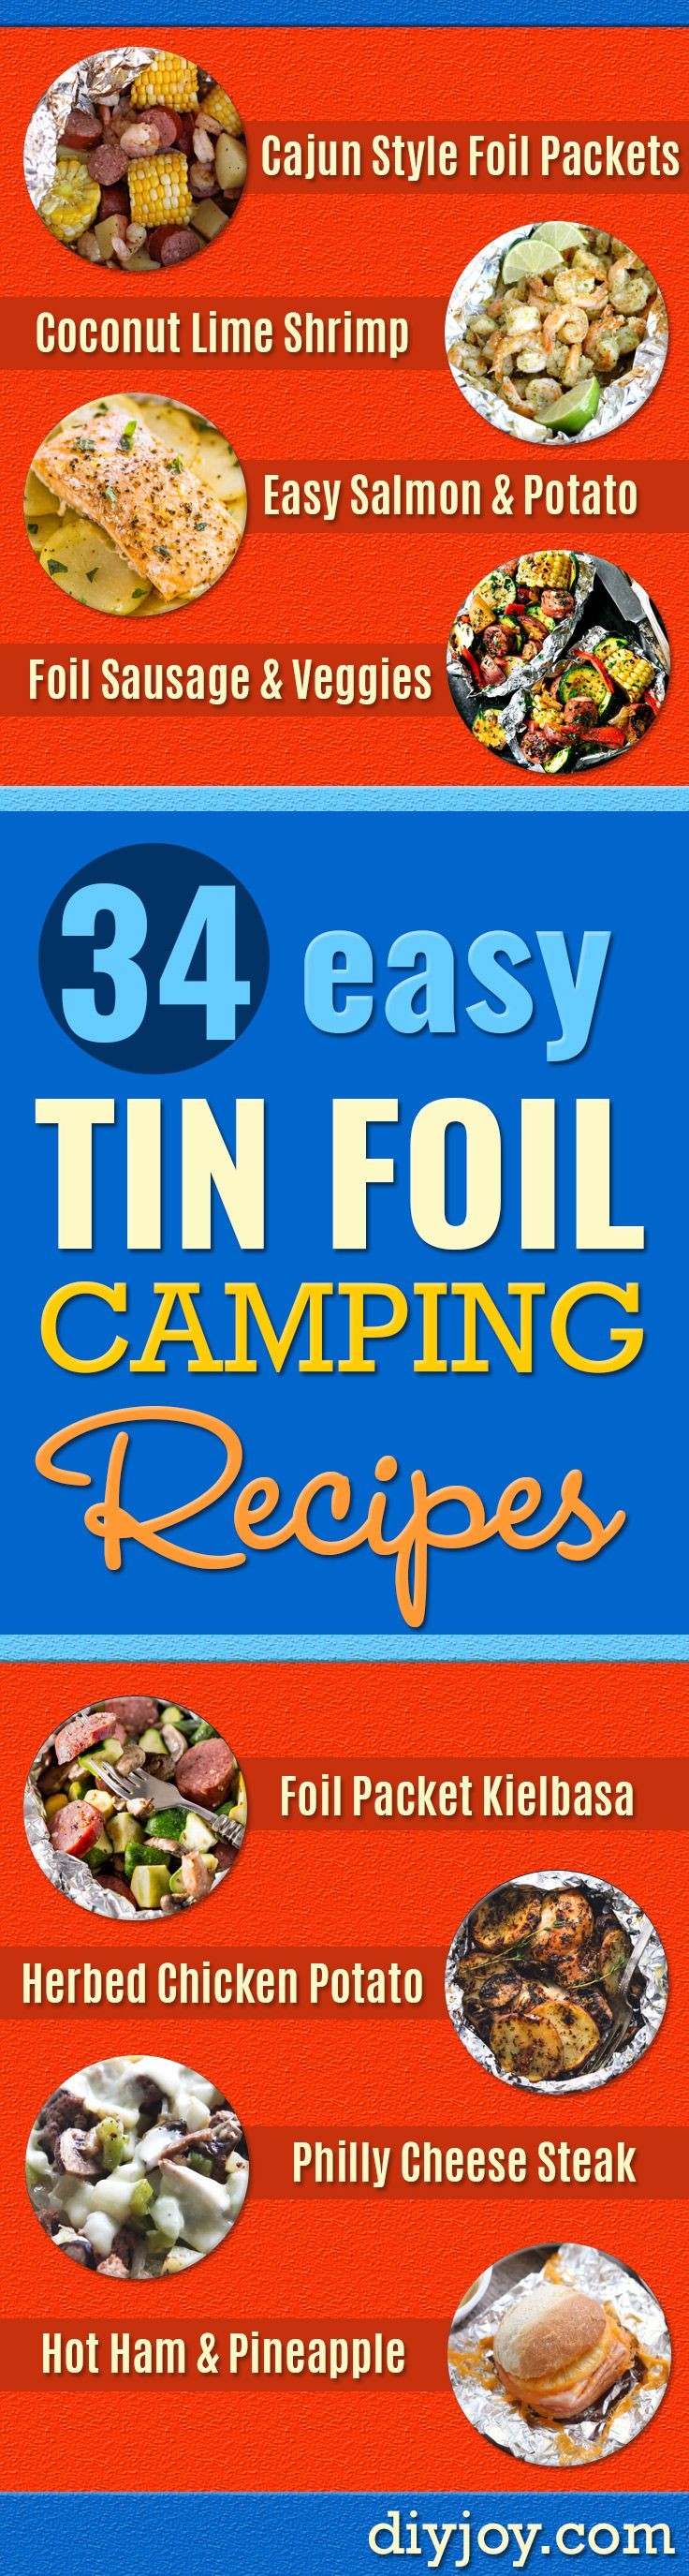 DIY Tin Foil Camping Recipes - Tin Foil Dinners, Ideas for Camping Trips and On Grill. Hamburger, Chicken, Healthy, Fish, Steak , Easy Make Ahead Recipe Ideas for the Campfire. Breakfast, Lunch, Dinner and Dessert, Snacks all Wrapped in Foil for Quick Cooking http://diyjoy.com/camping-recipes-tin-foil